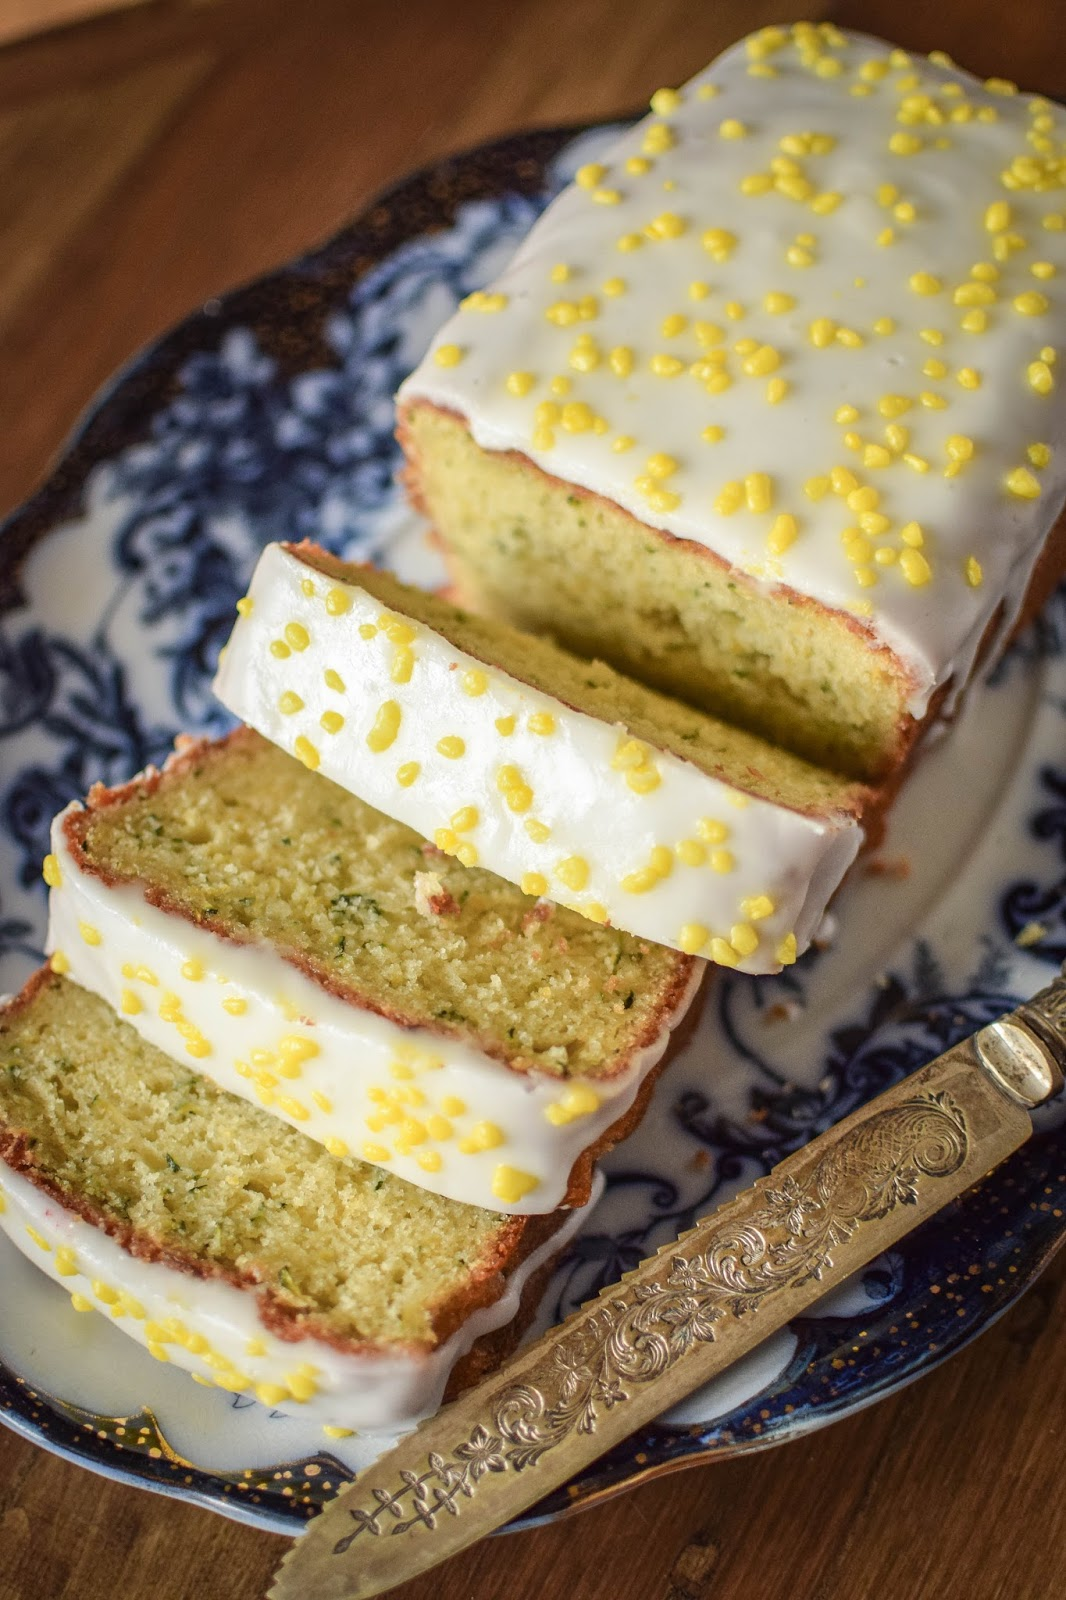 Lemon Zucchini Loaf, who said carrots are the only vegetables allowed in cake?